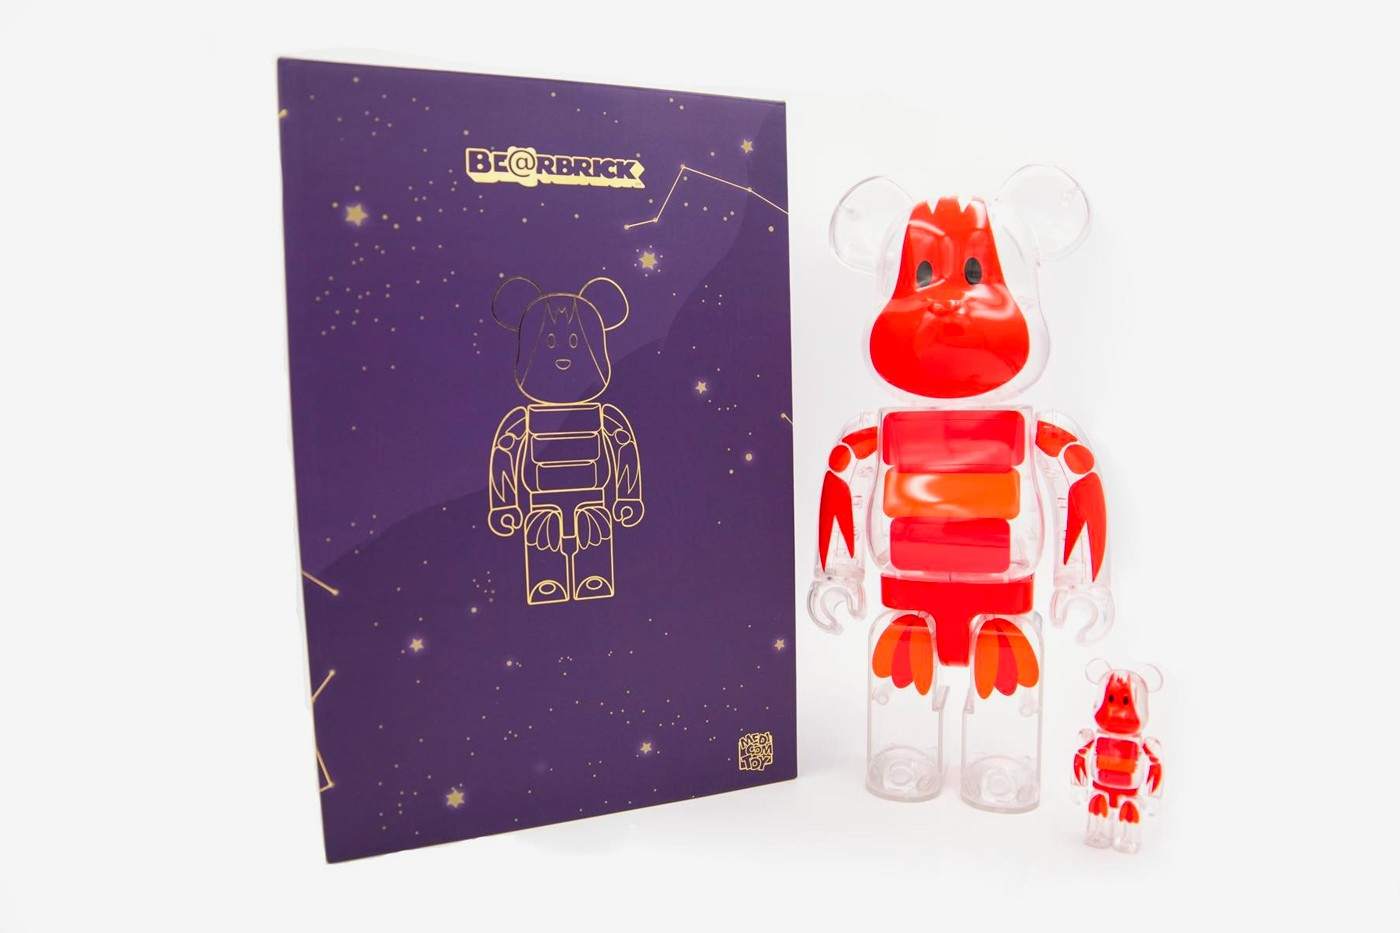 Medicom Toy to Hold BEARBRICK PLANET Exhibition China Changsha IFS Tower T1 skyscraper installations skyscraper toys accessories collectibles japanese crayfish transparent